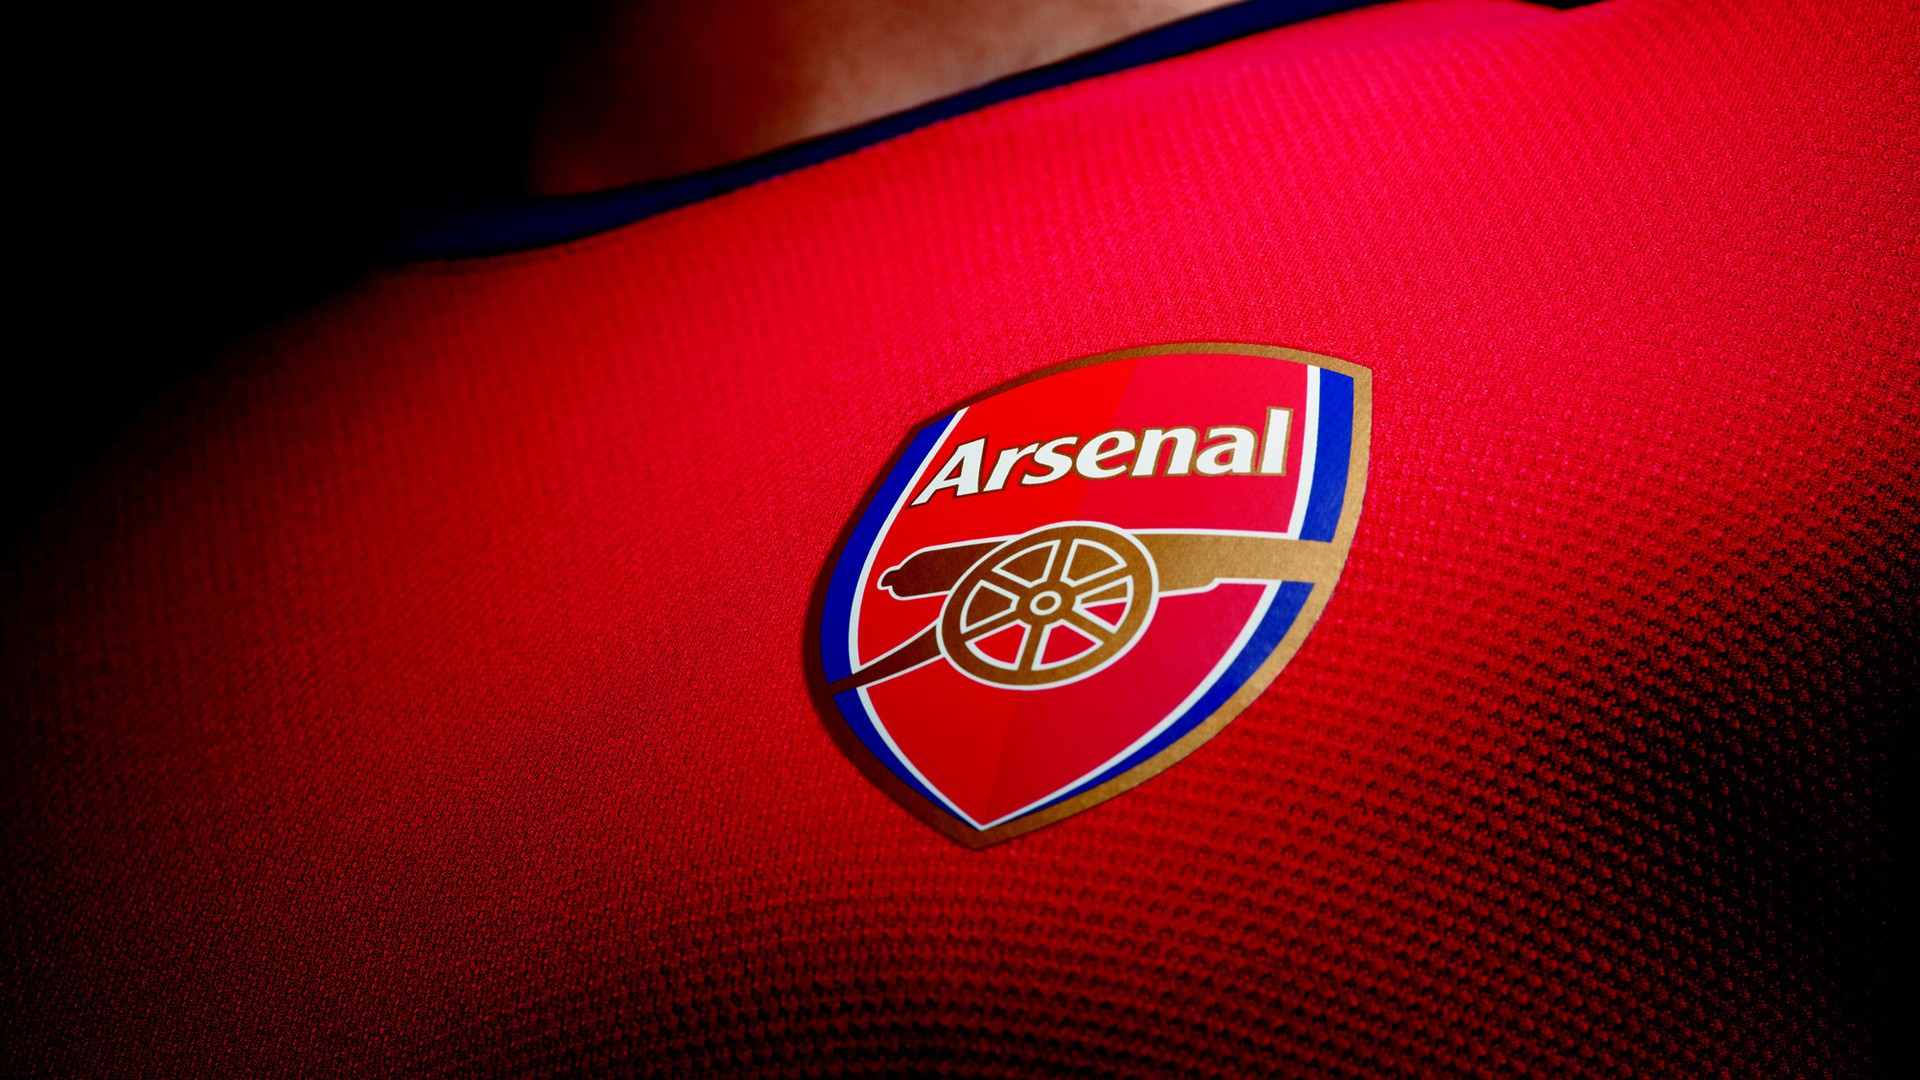 Arsenal new jersey for 2013-2014